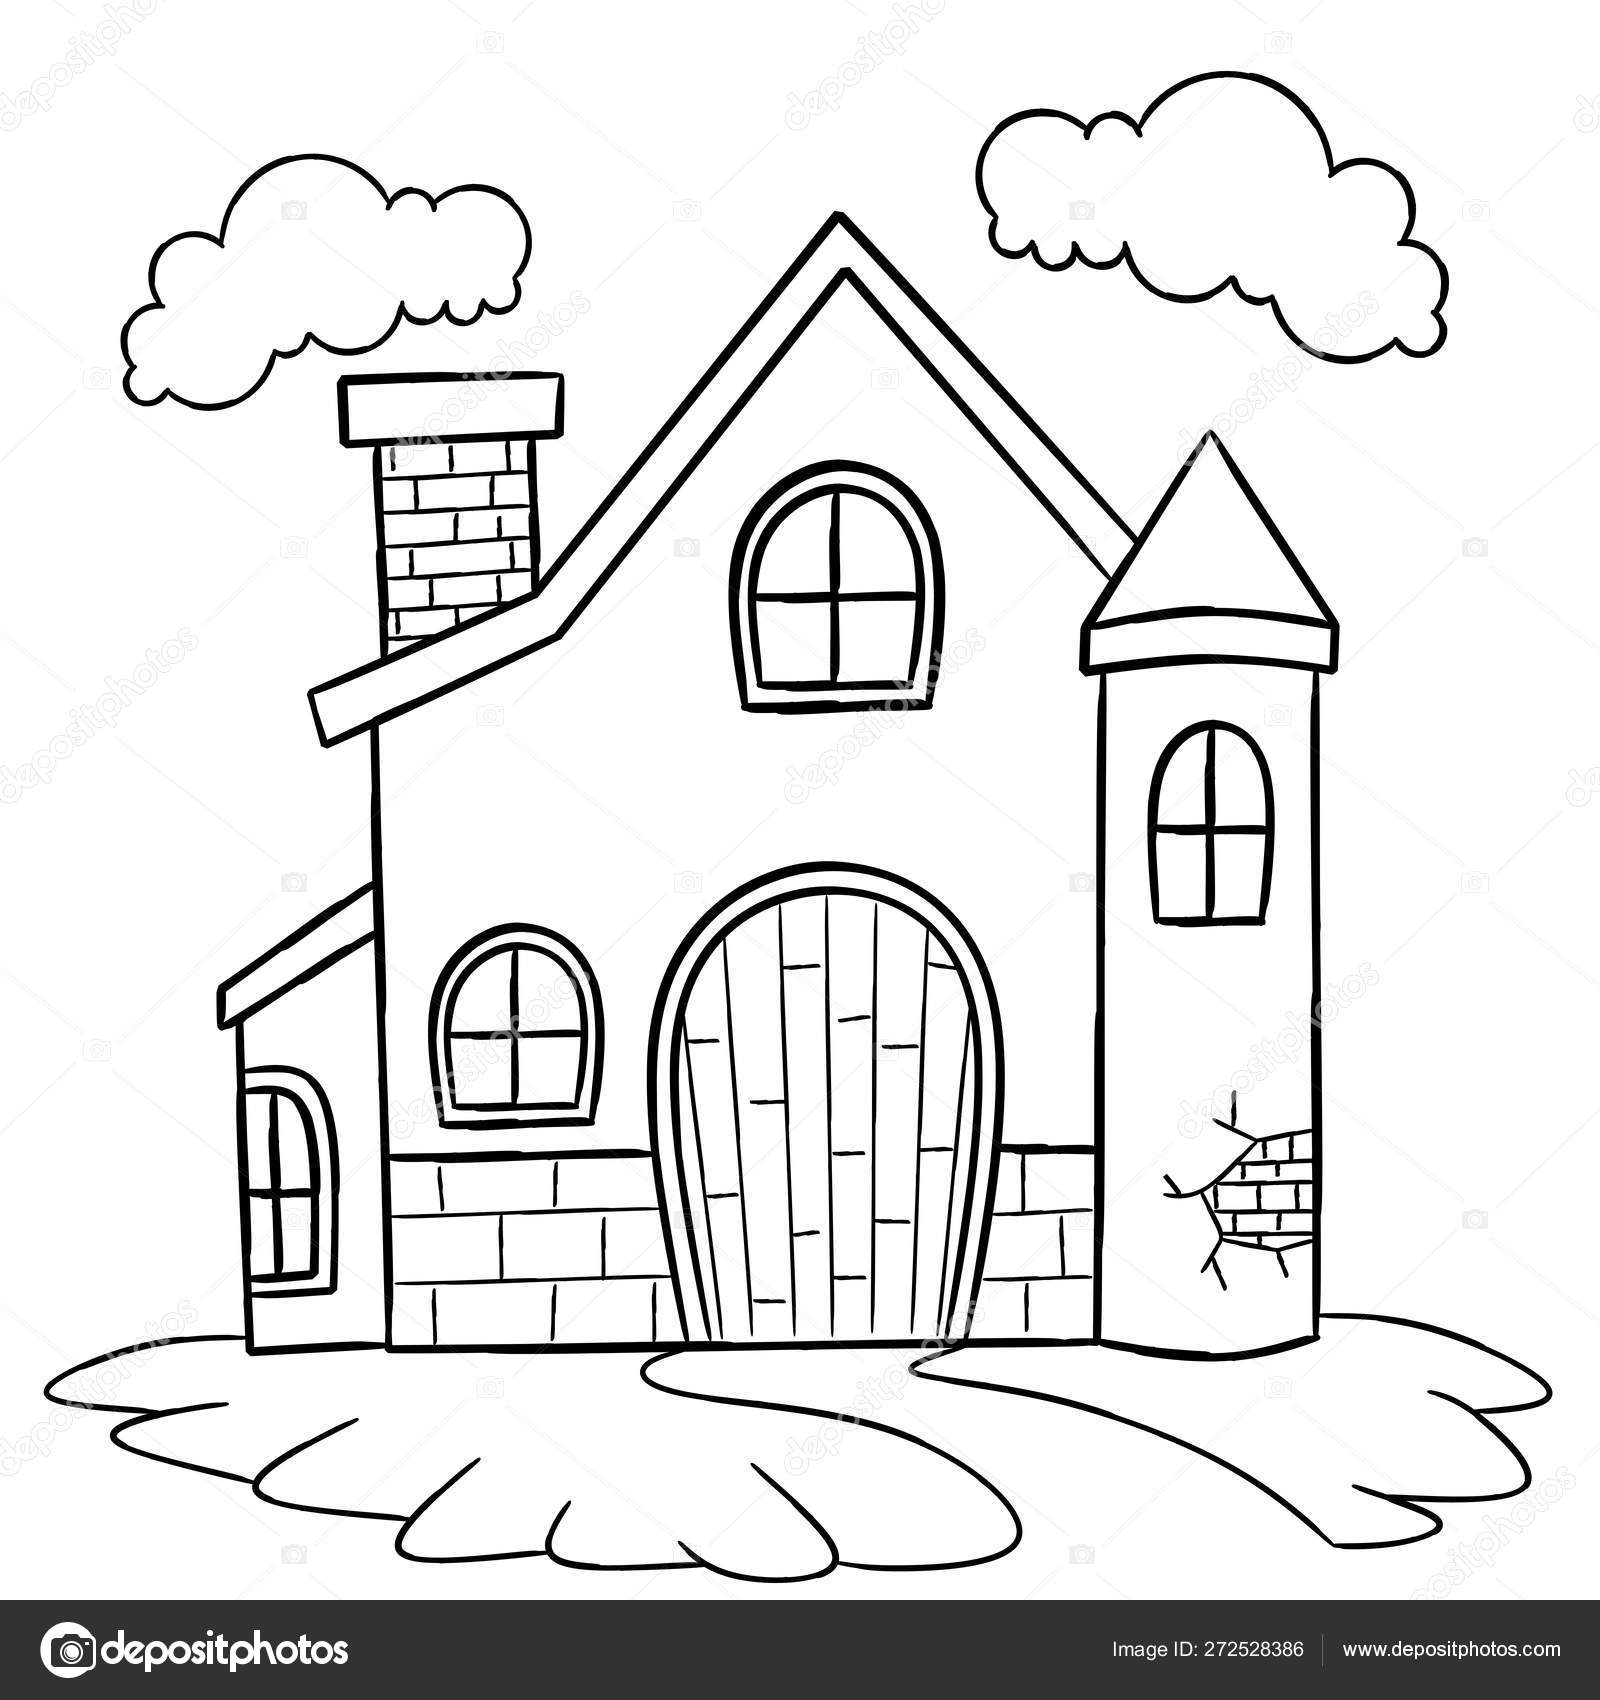 coloring pages house house coloring page children stock vector dennyranch house coloring pages